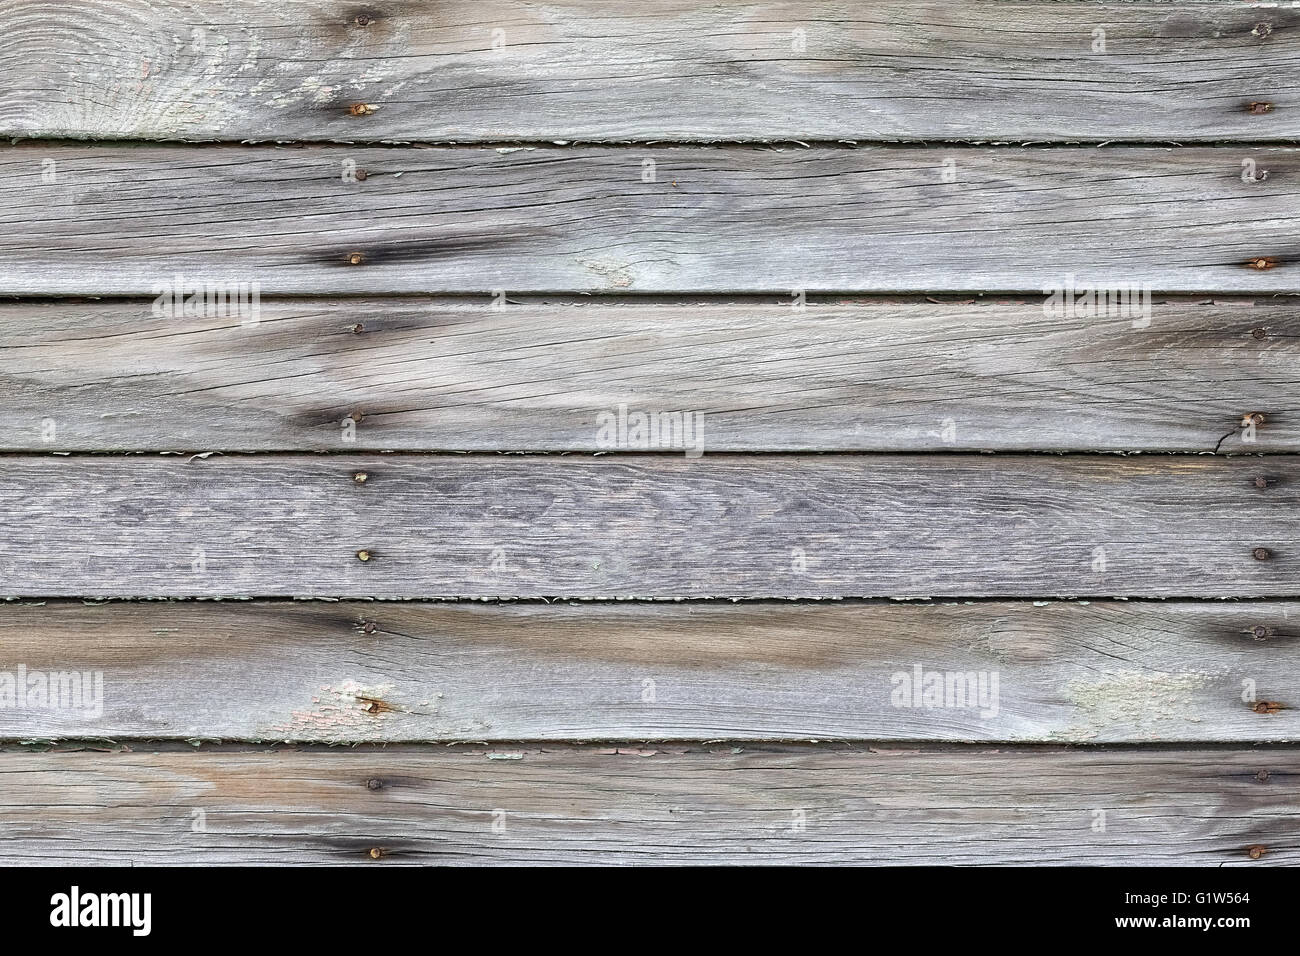 Old weathered wooden boards with rusty nails. - Stock Image